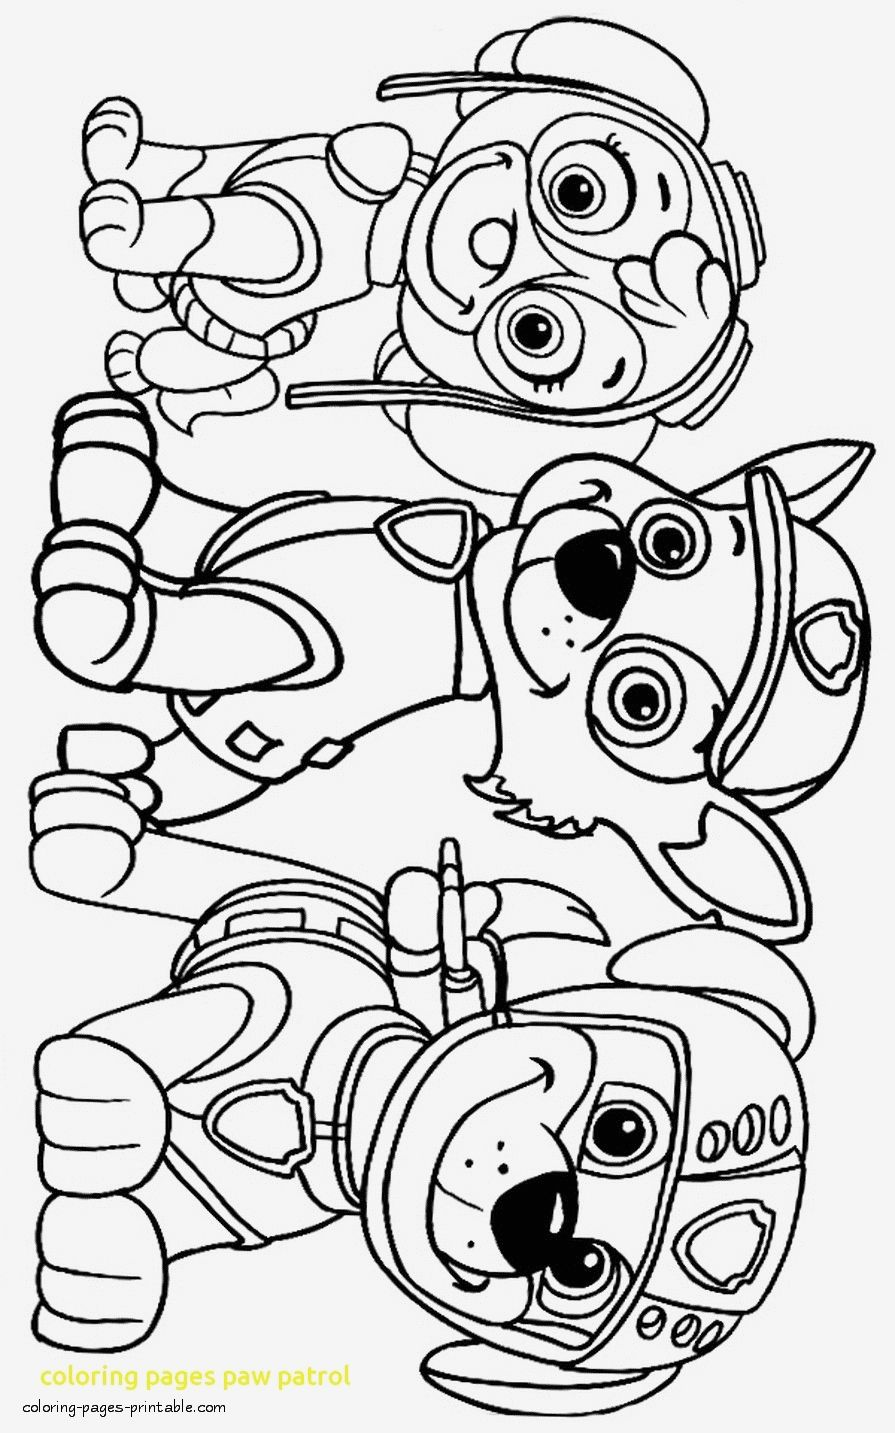 Paw Patrol Coloring Sheets New Photography Free Paw Patrol Coloring Pages The First Ever Cus Puppy Coloring Pages Paw Patrol Coloring Paw Patrol Coloring Pages